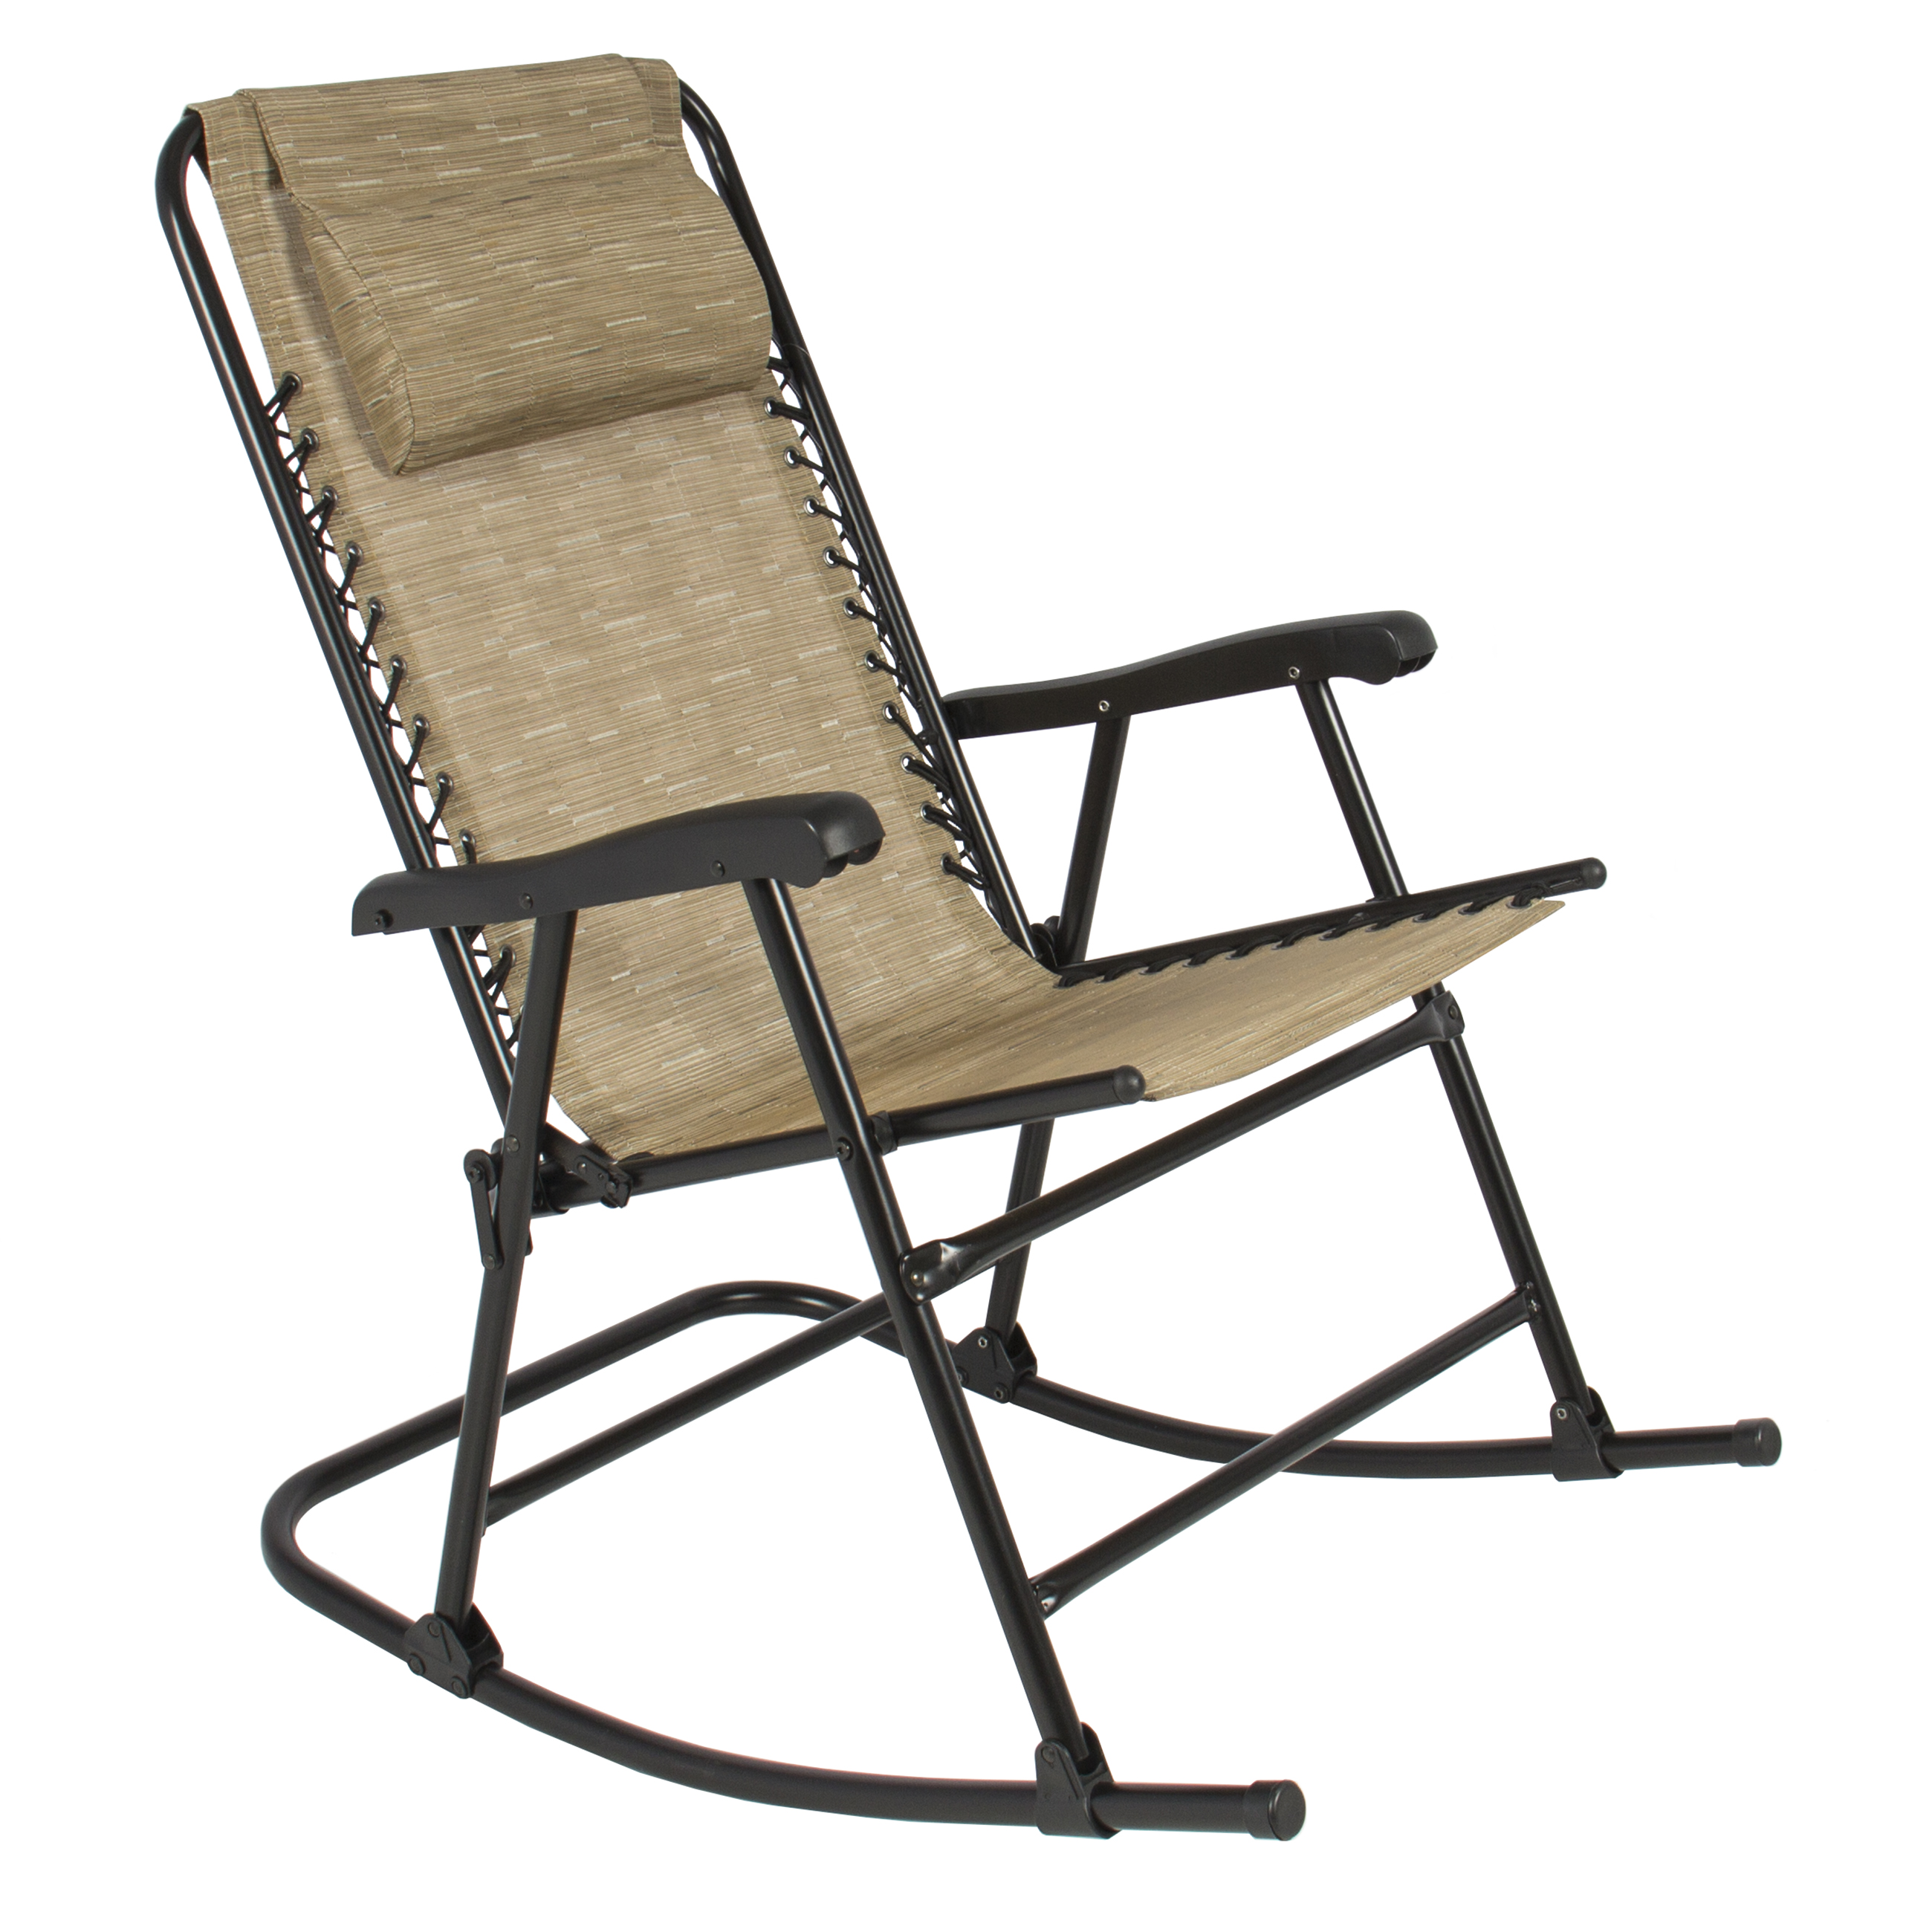 Awesome Best Choice Products Folding Rocking Chair Foldable Rocker Outdoor Patio  Furniture Beige